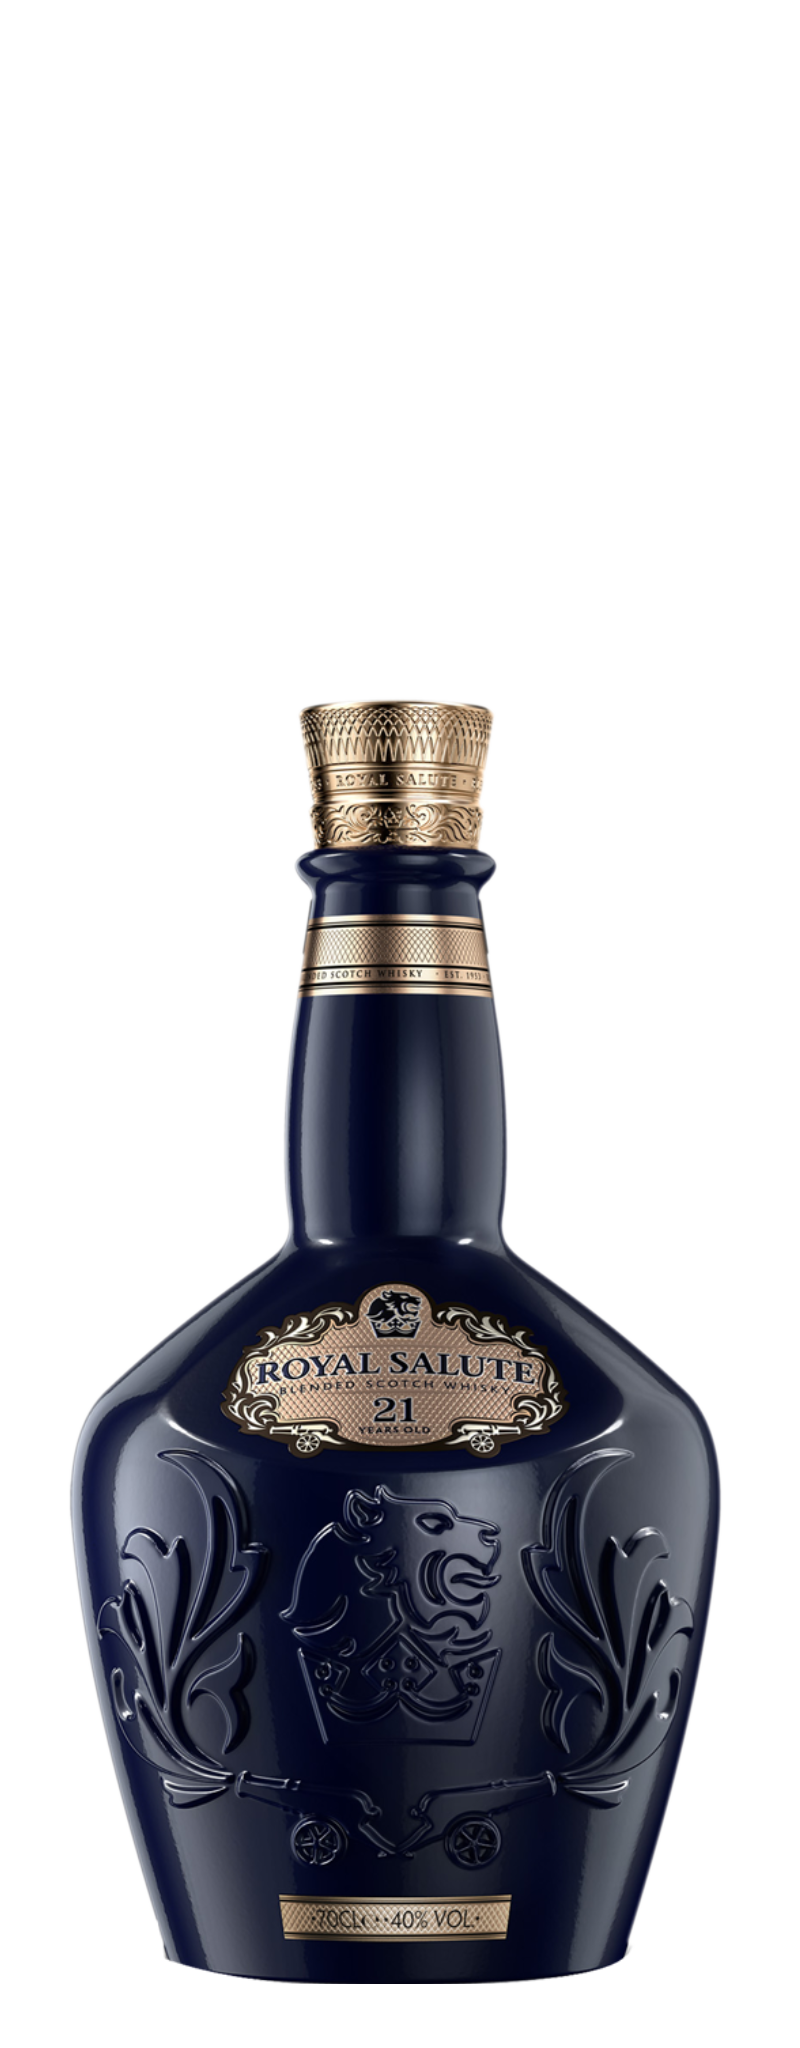 Chivas Regal Royal Salute (21 year old) (21yo) - 700ml